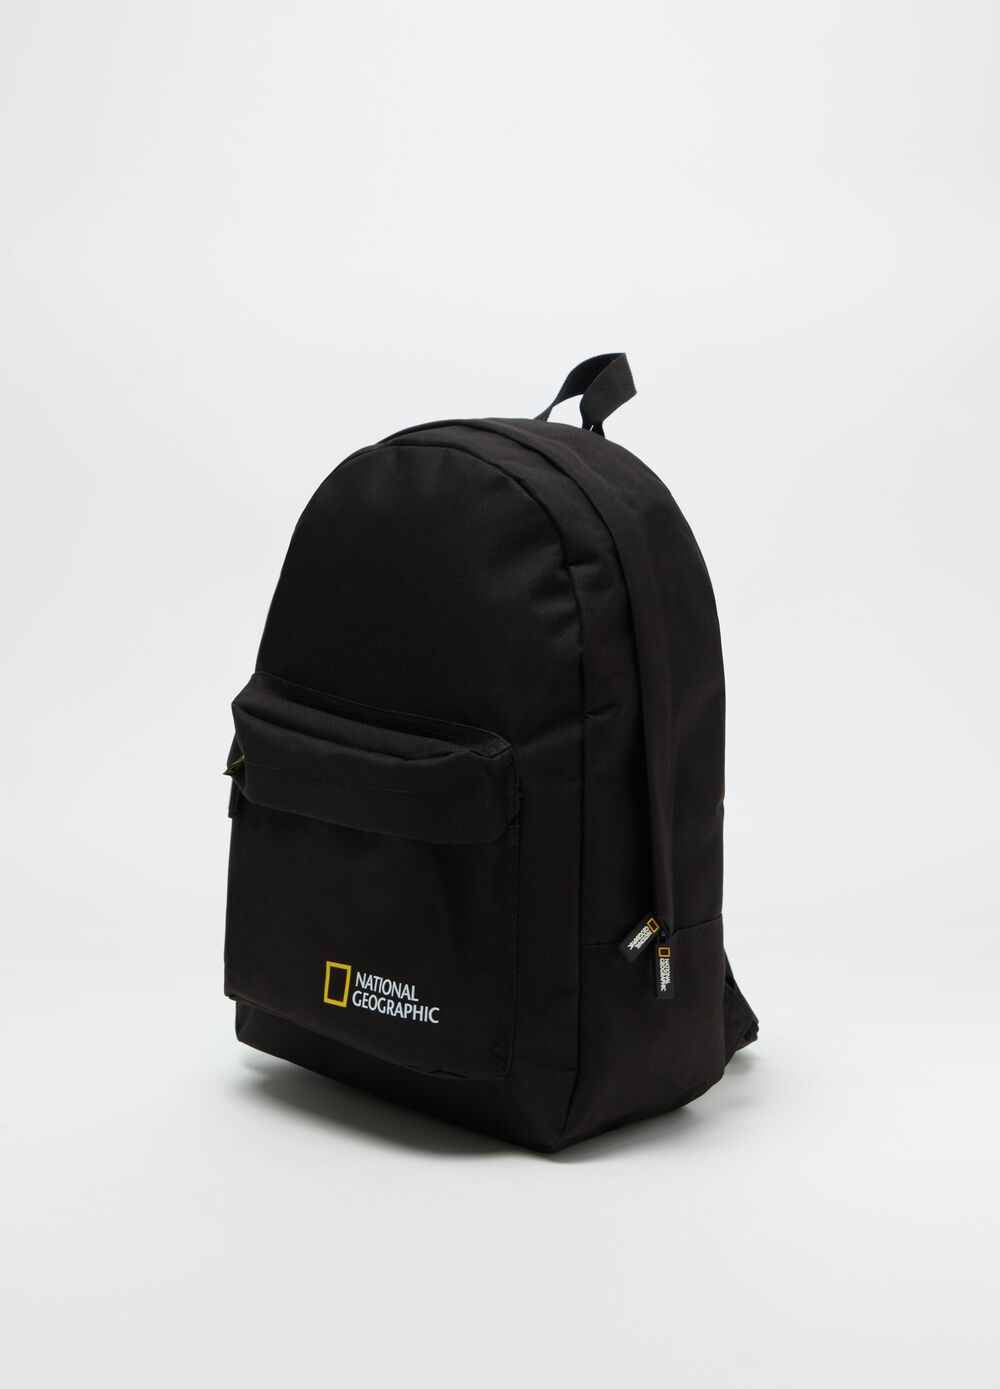 Backpack with National Geographic print